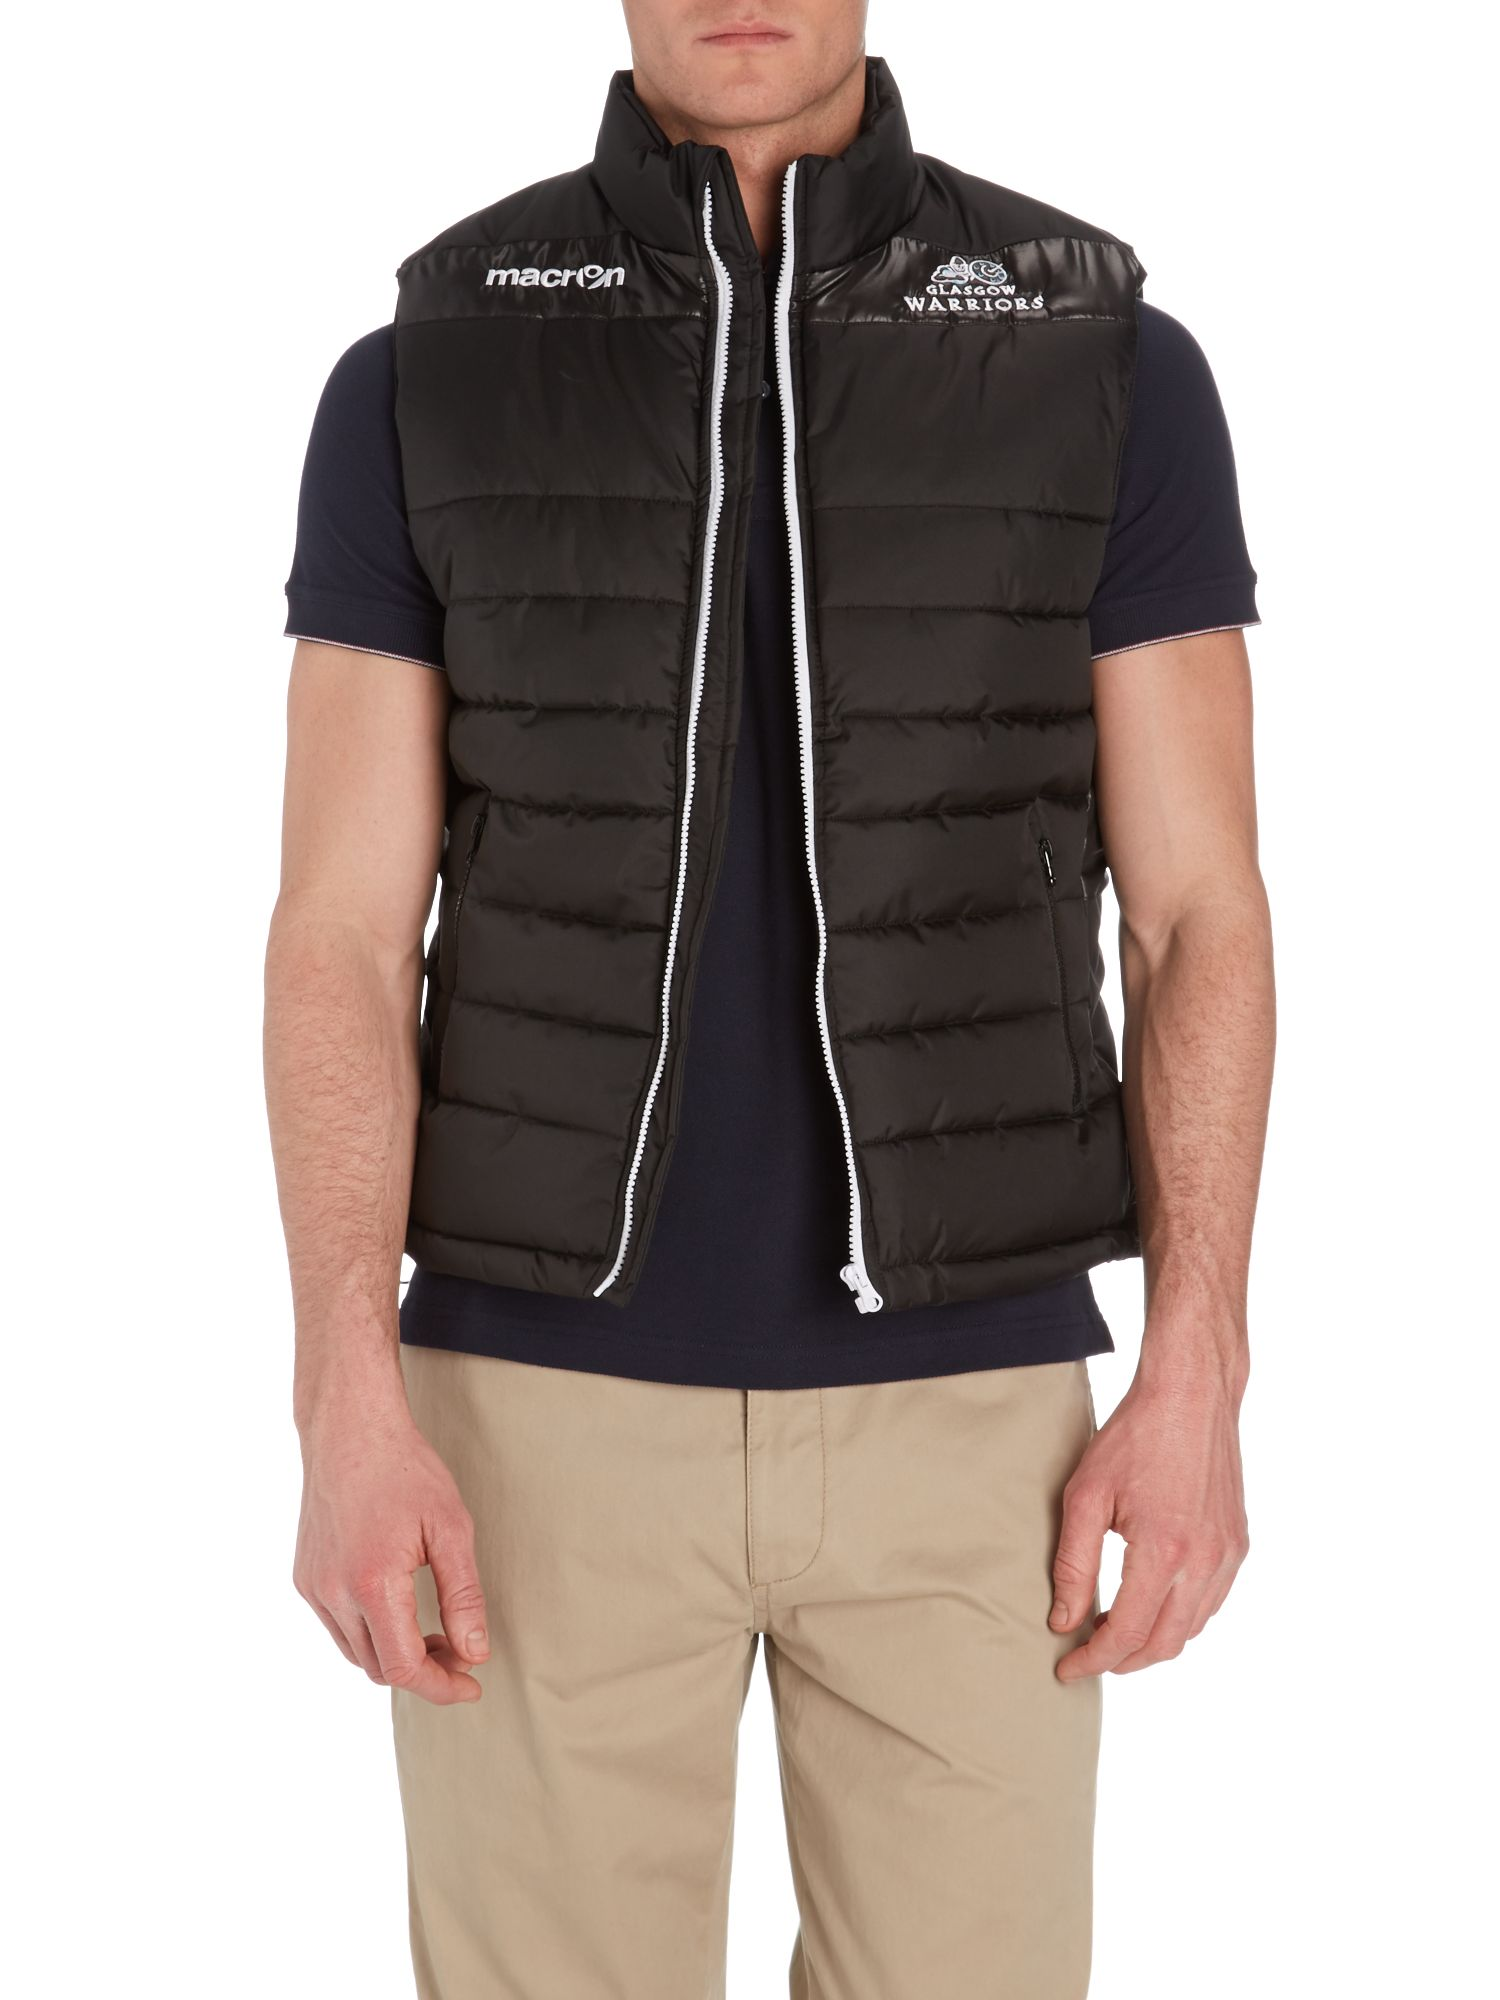 Glasgow warriors padded gilet